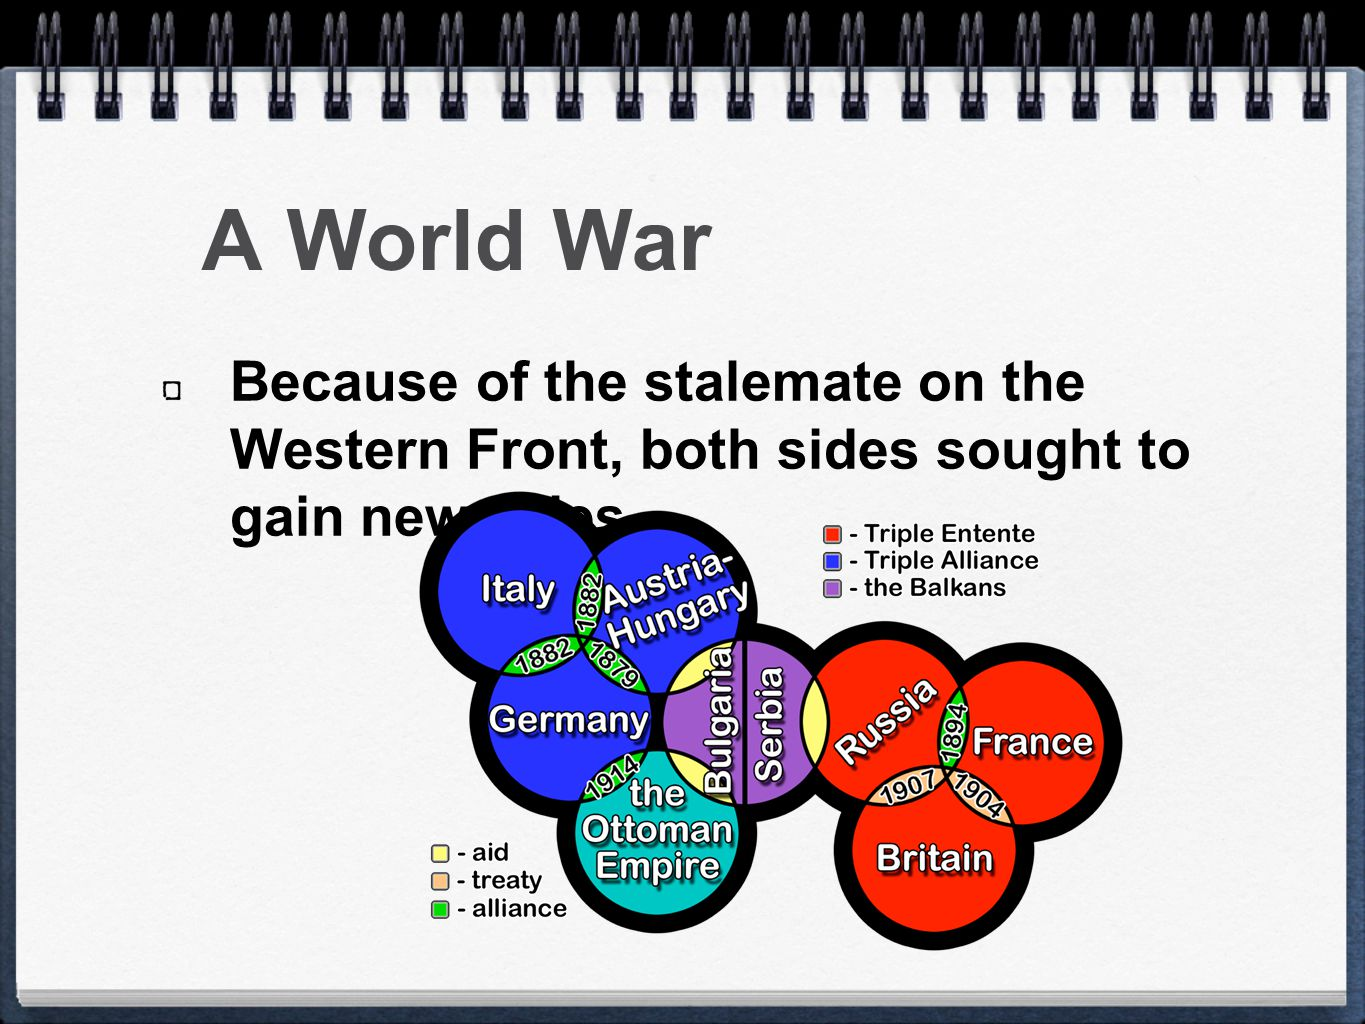 A World War Because of the stalemate on the Western Front, both sides sought to gain new allies.